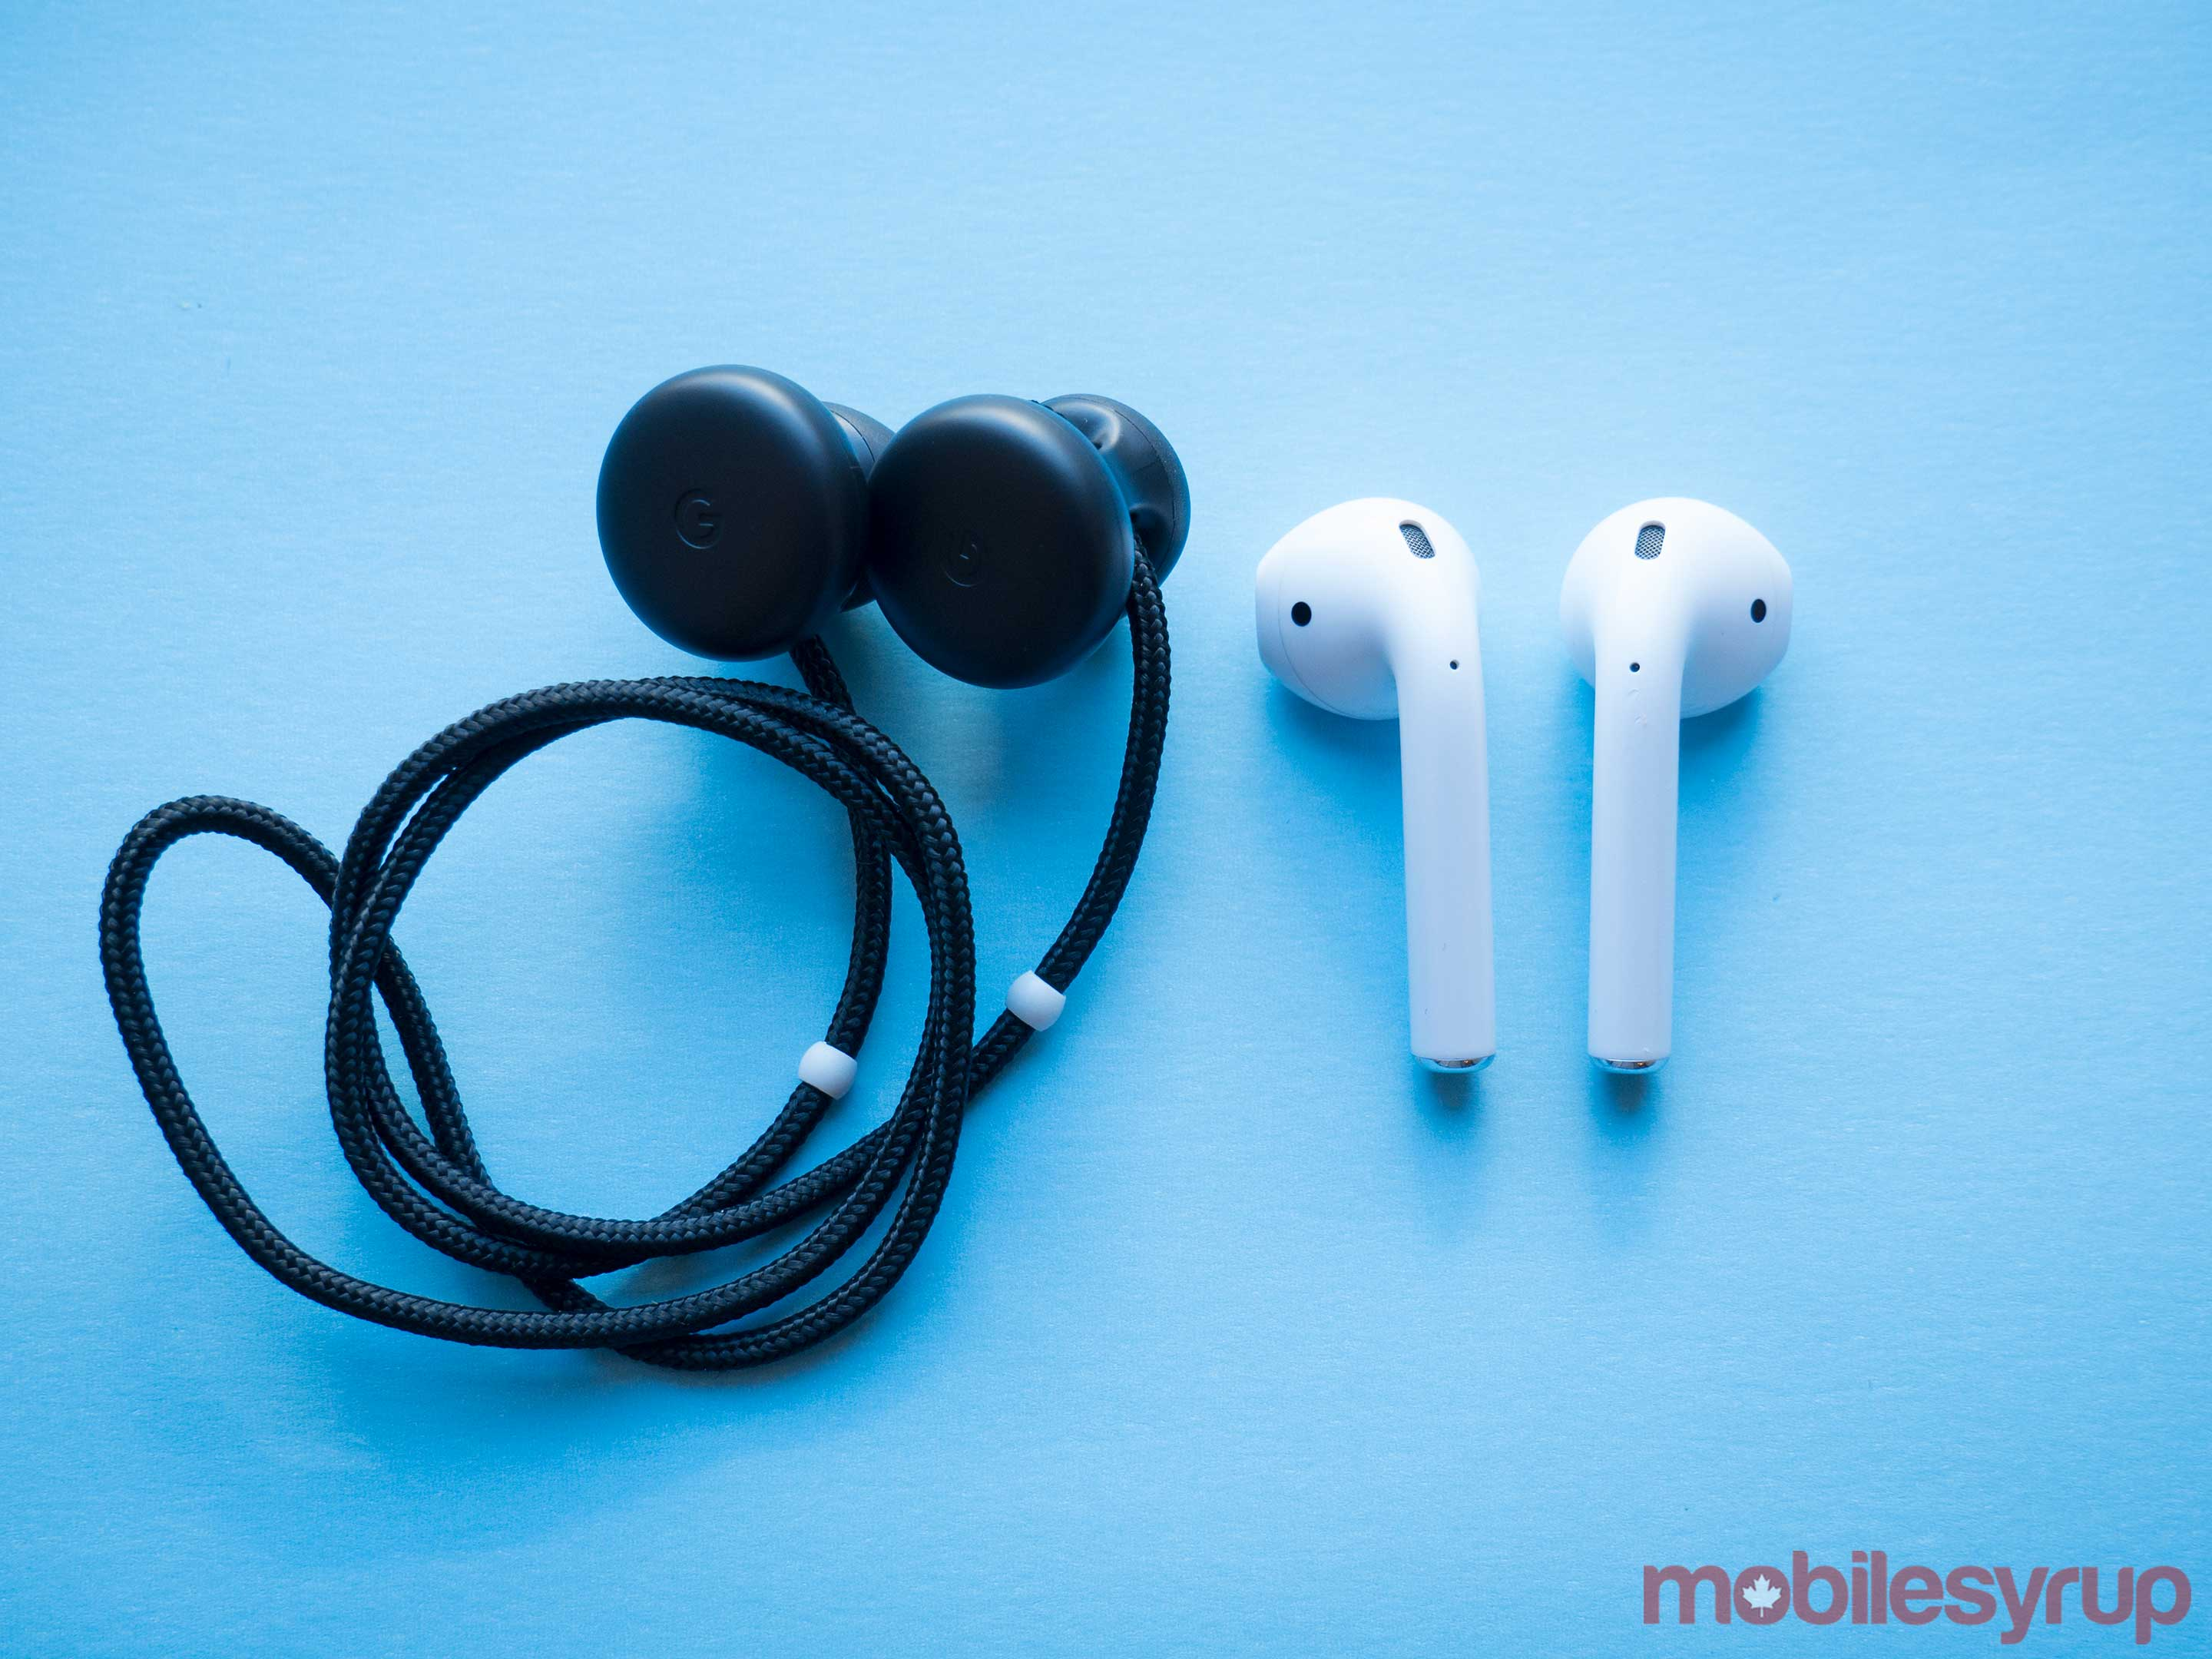 Pixel Buds and Apple's AirPods